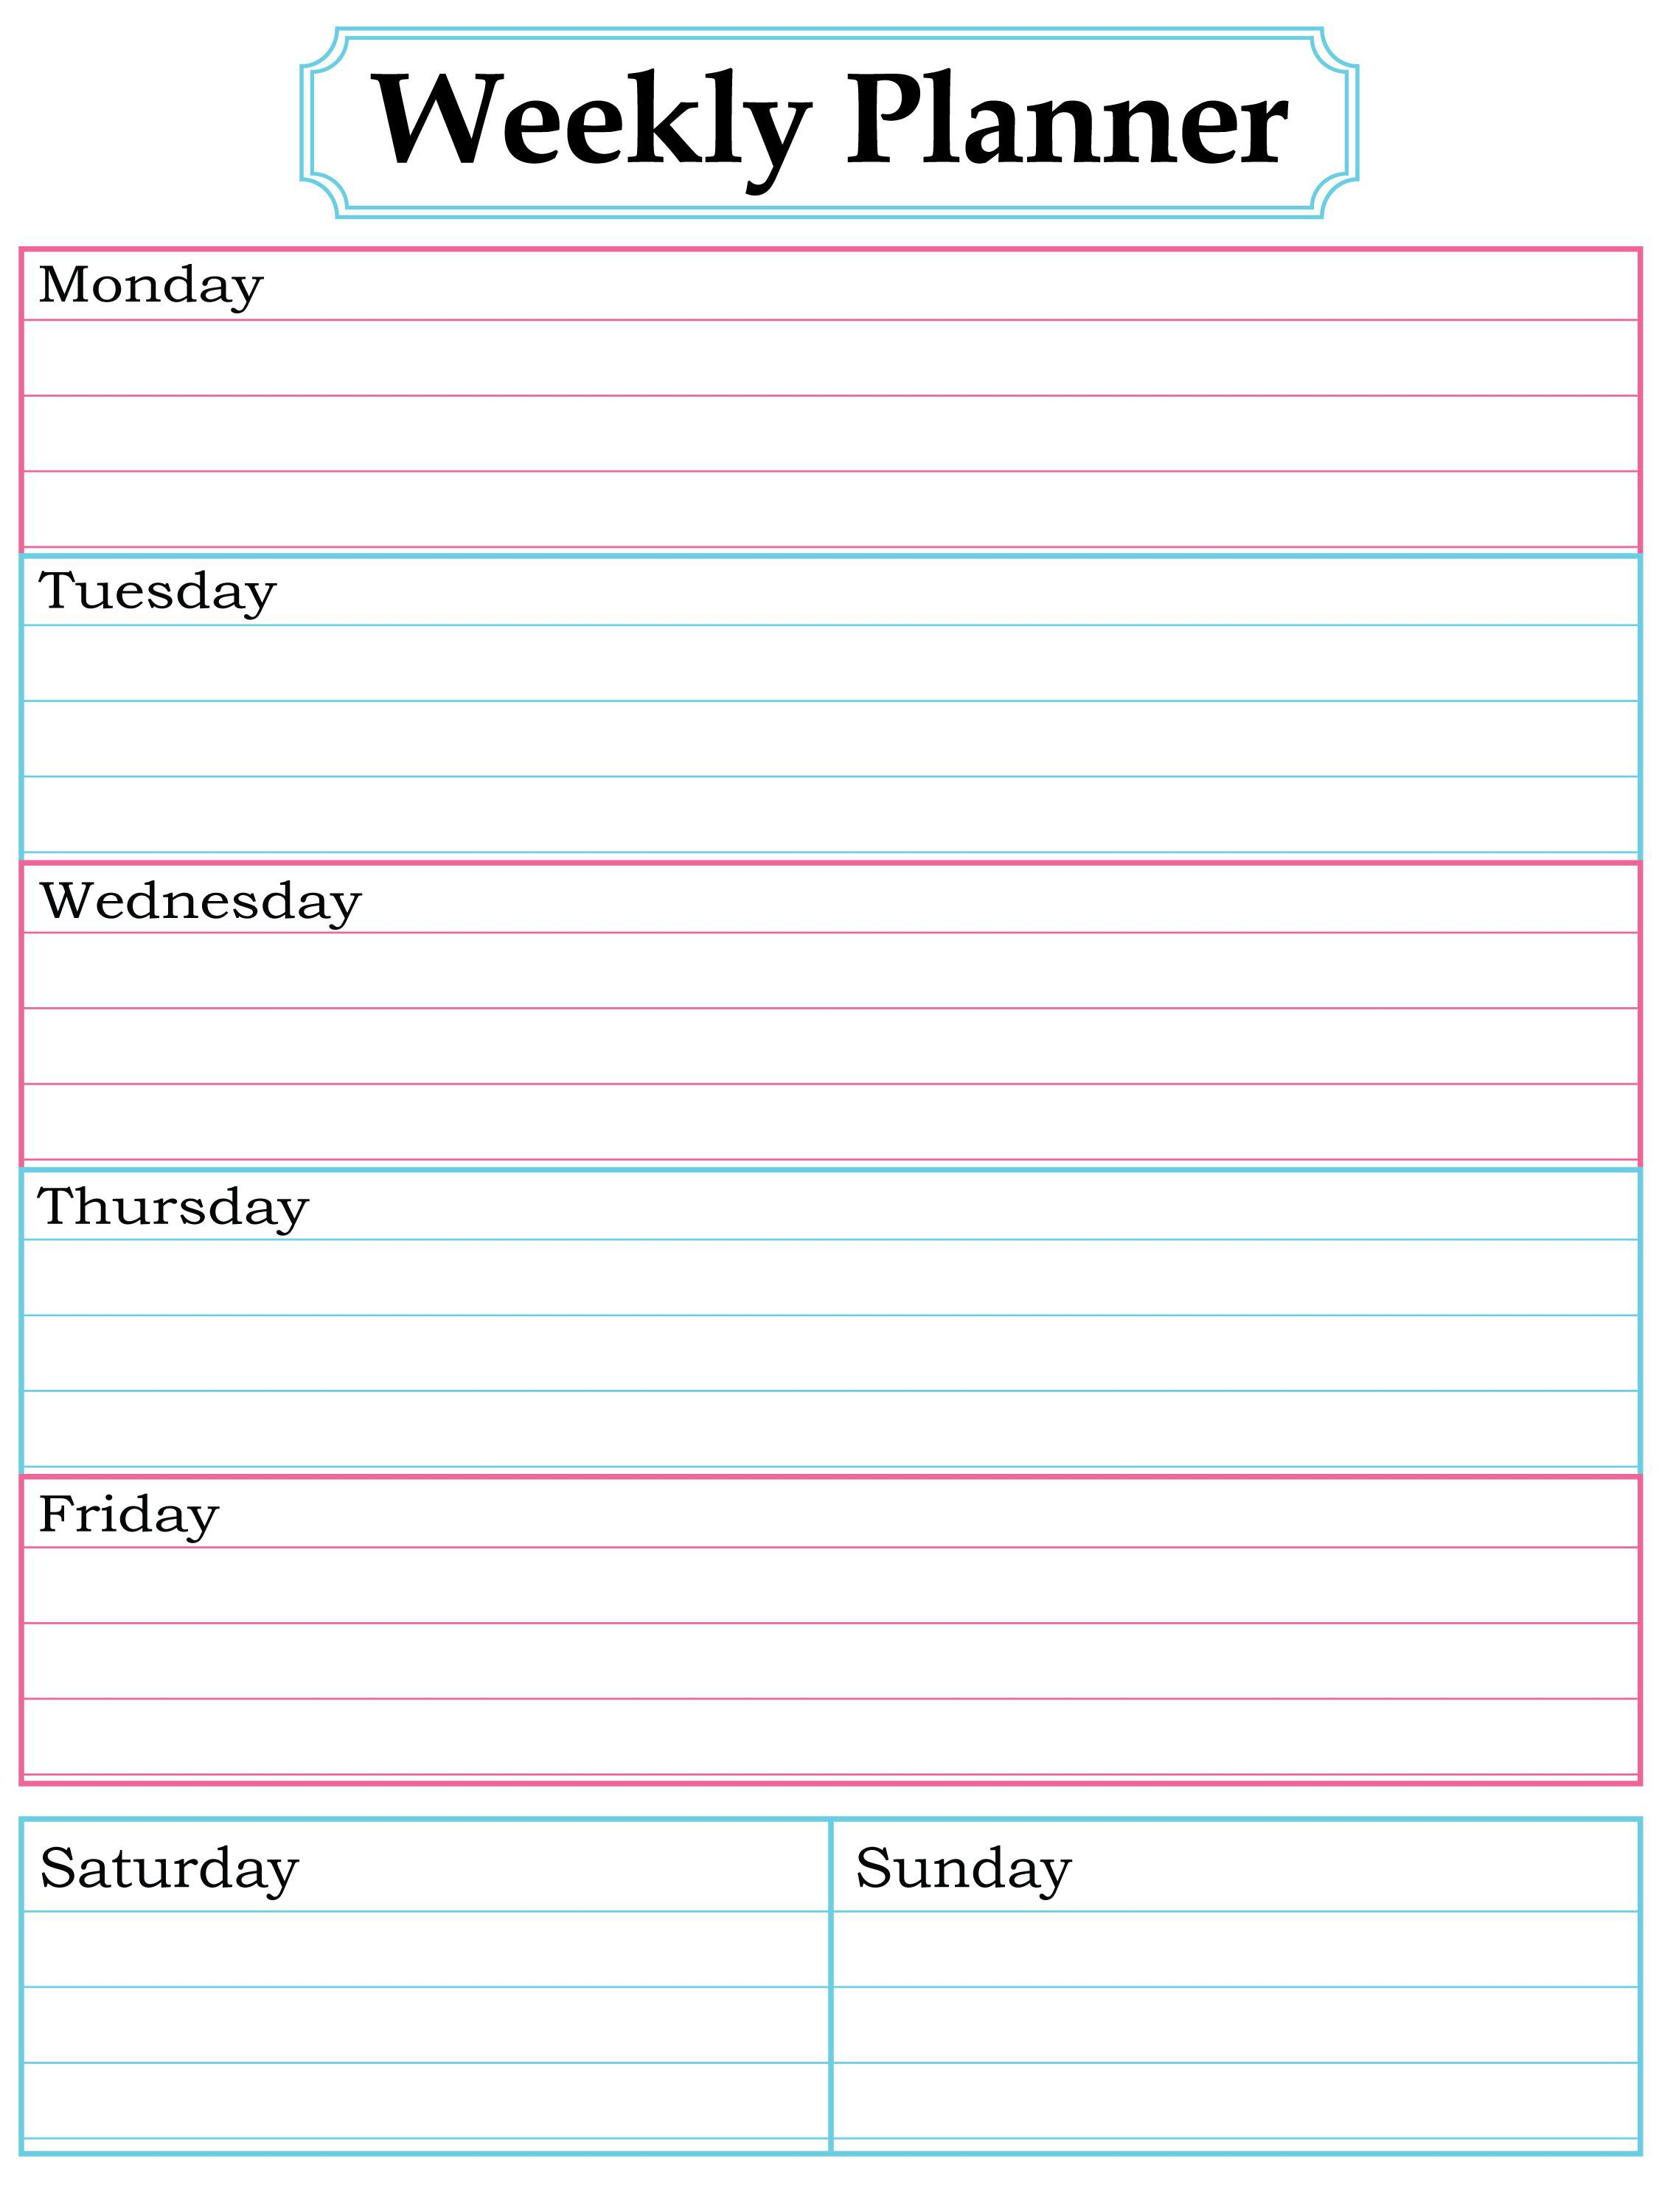 003 Surprising Printable Weekly Planner Template Cute Inspiration  Free CalendarFull